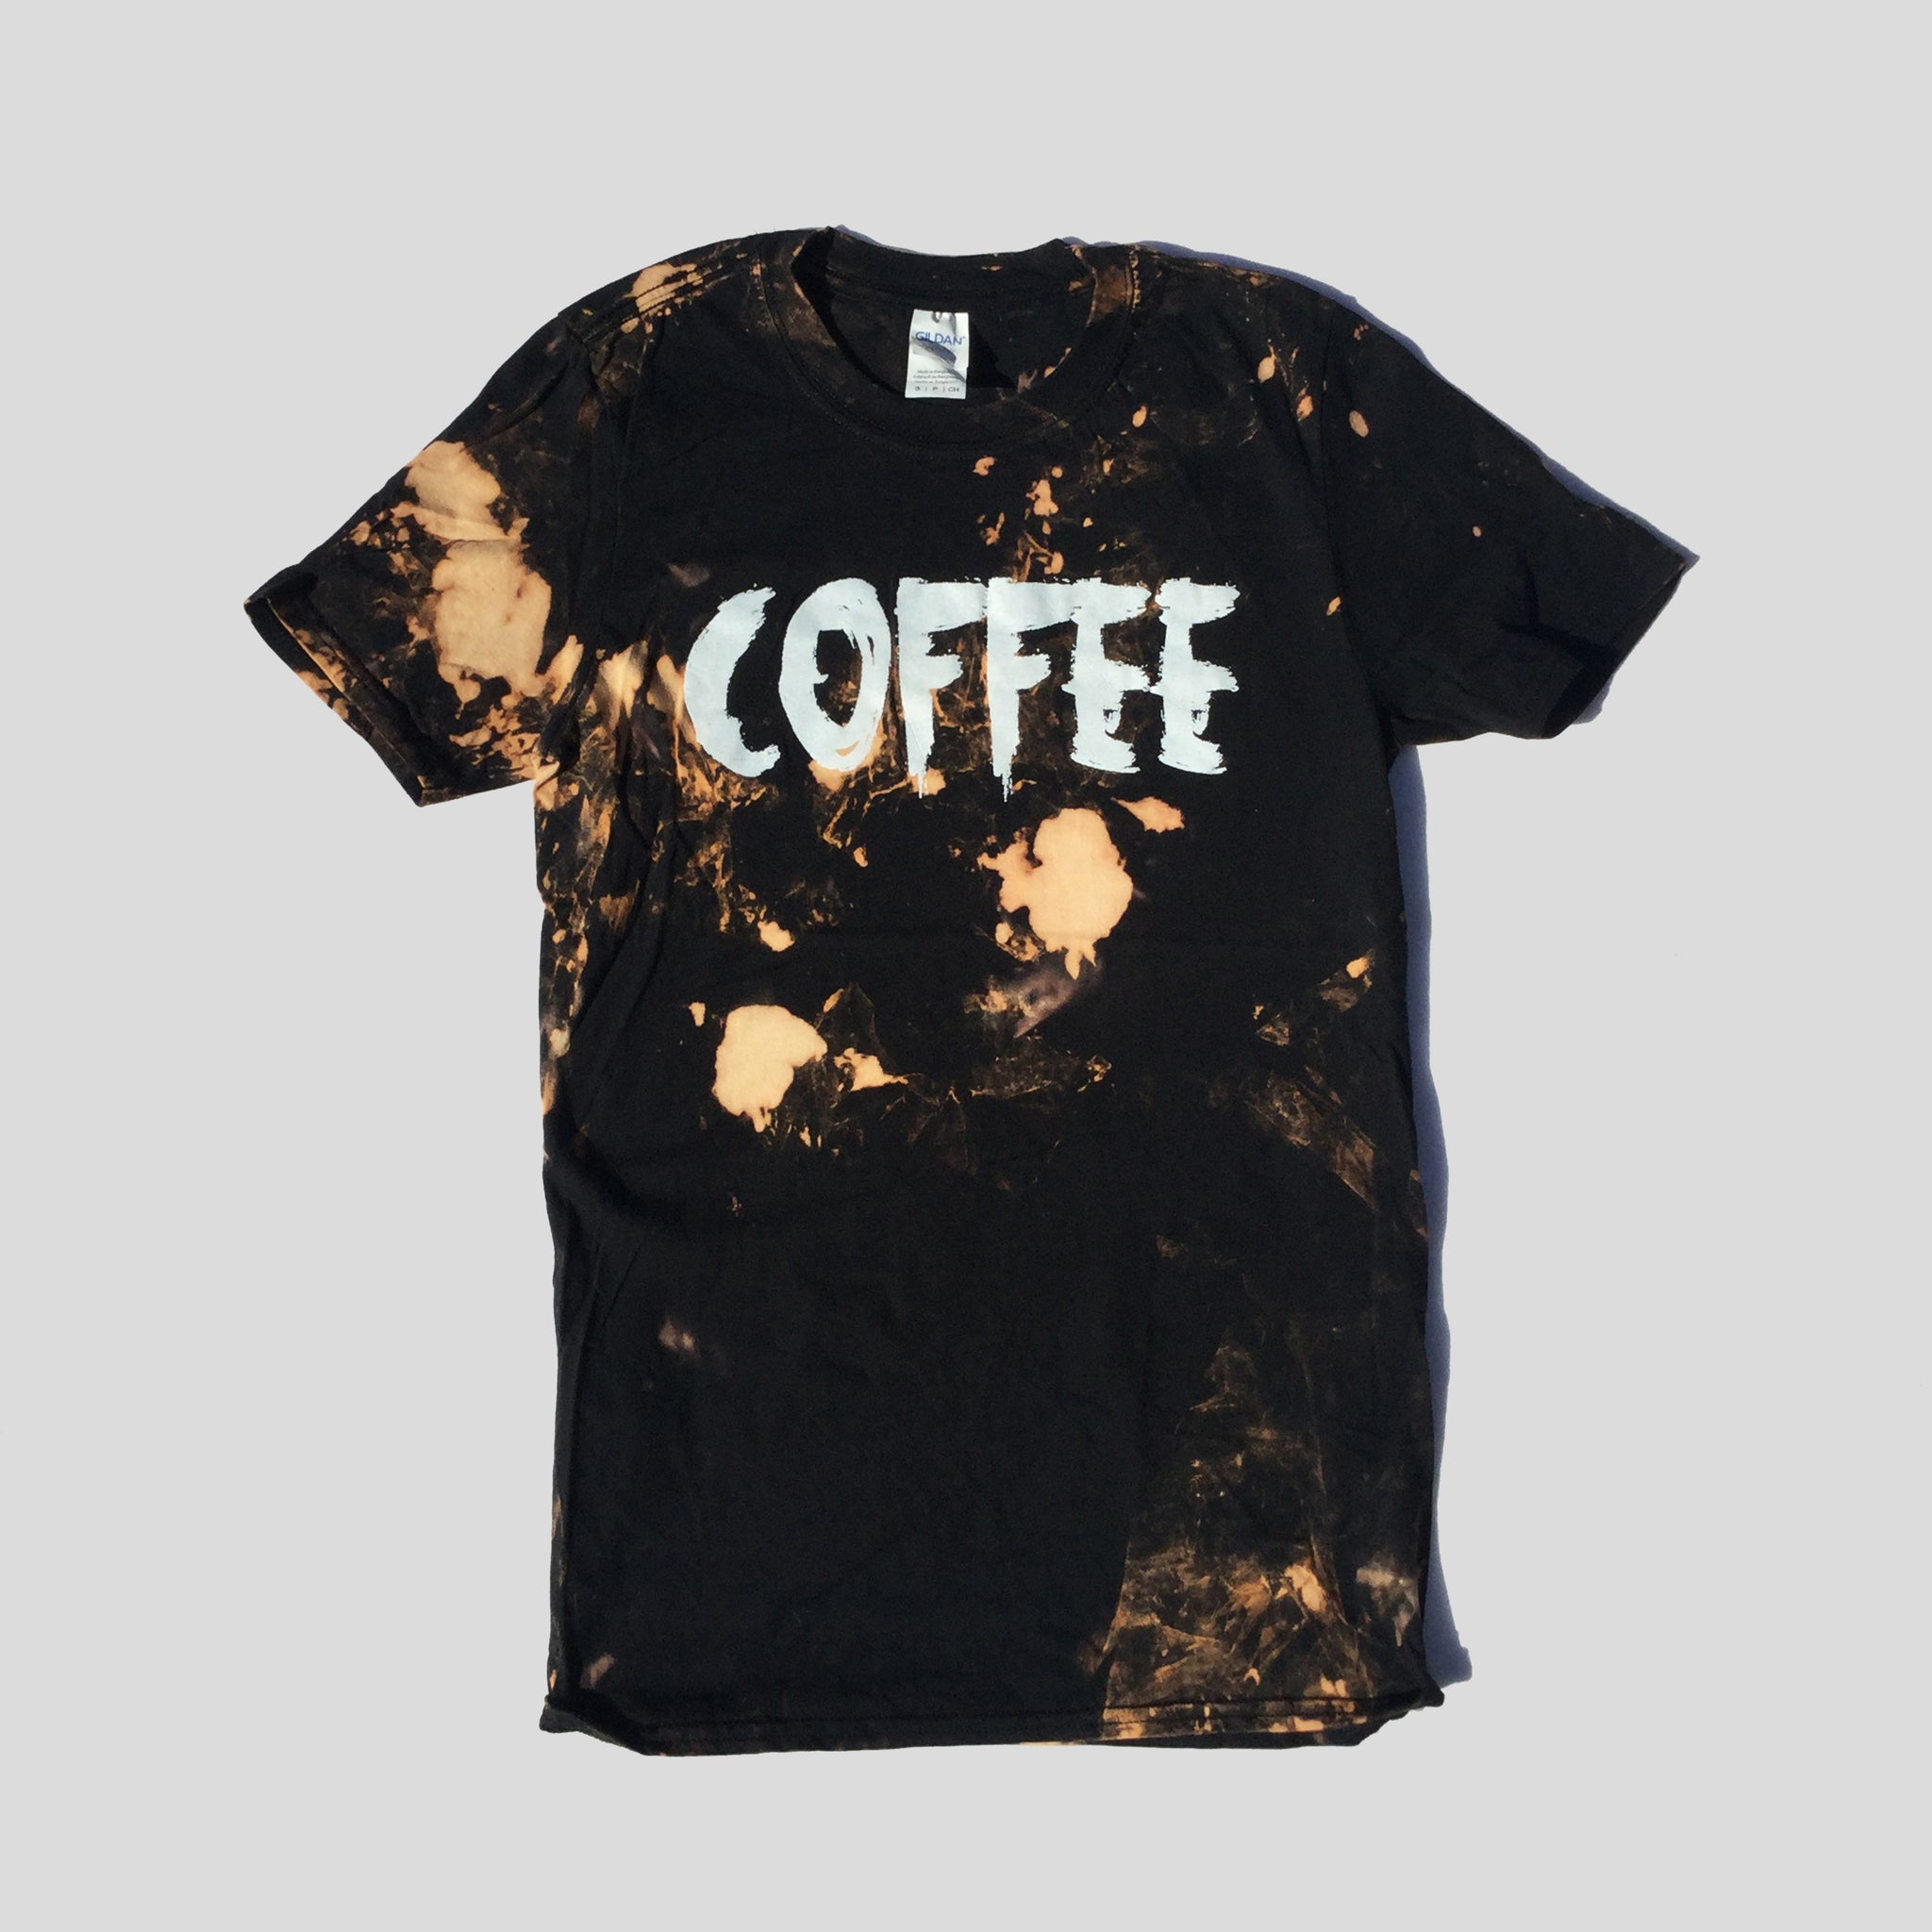 Coffee Acid Burned Tie Dye T-shirt